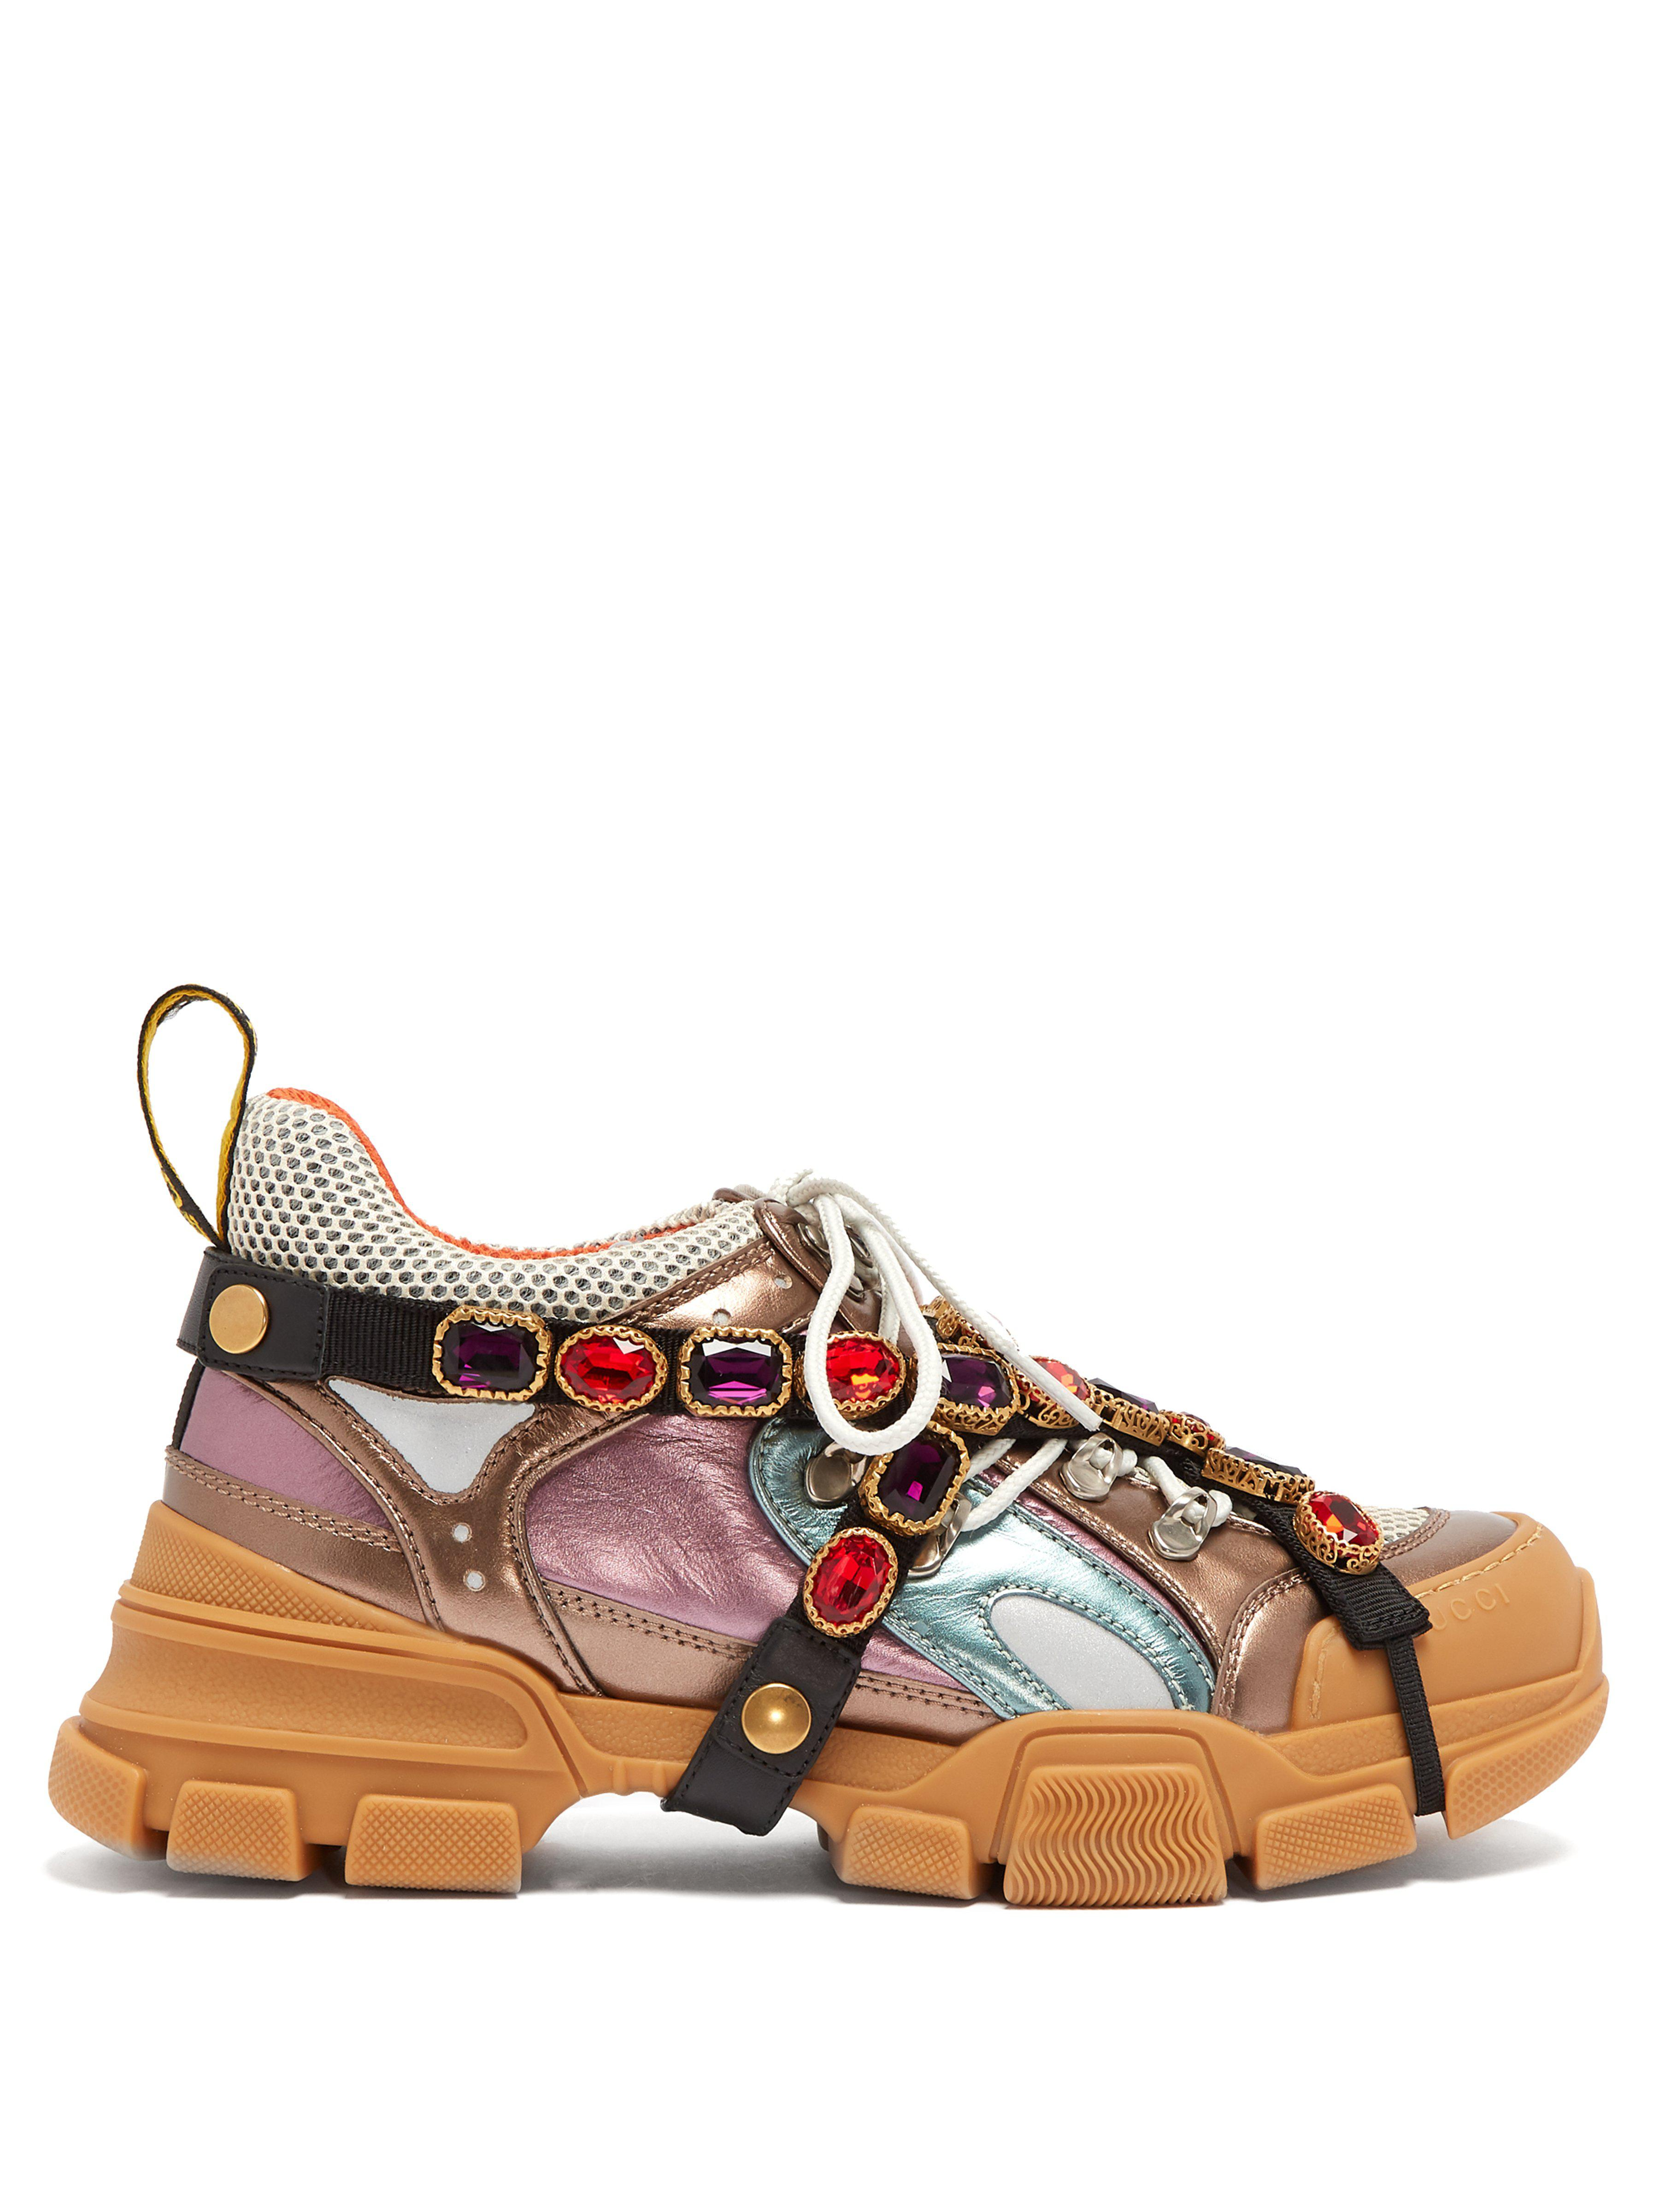 3369c1983 Gucci Flashtrek Metallic Leather Hiker Sneaker With Chain Strap ...